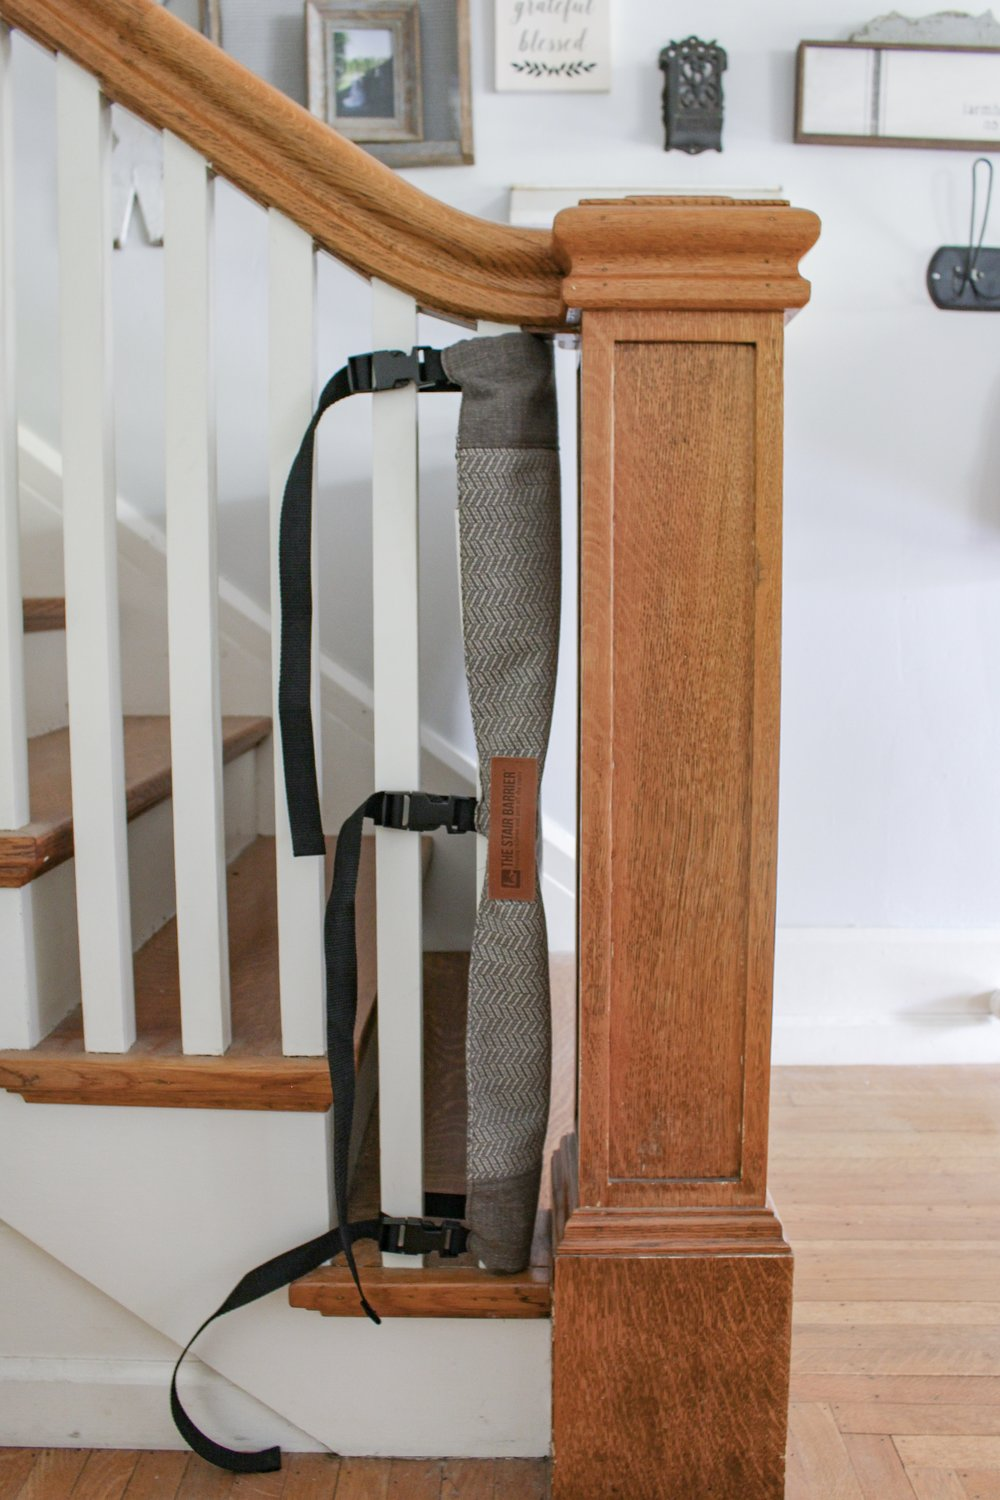 The Stair Barrier buckles for baby proofing the stairs